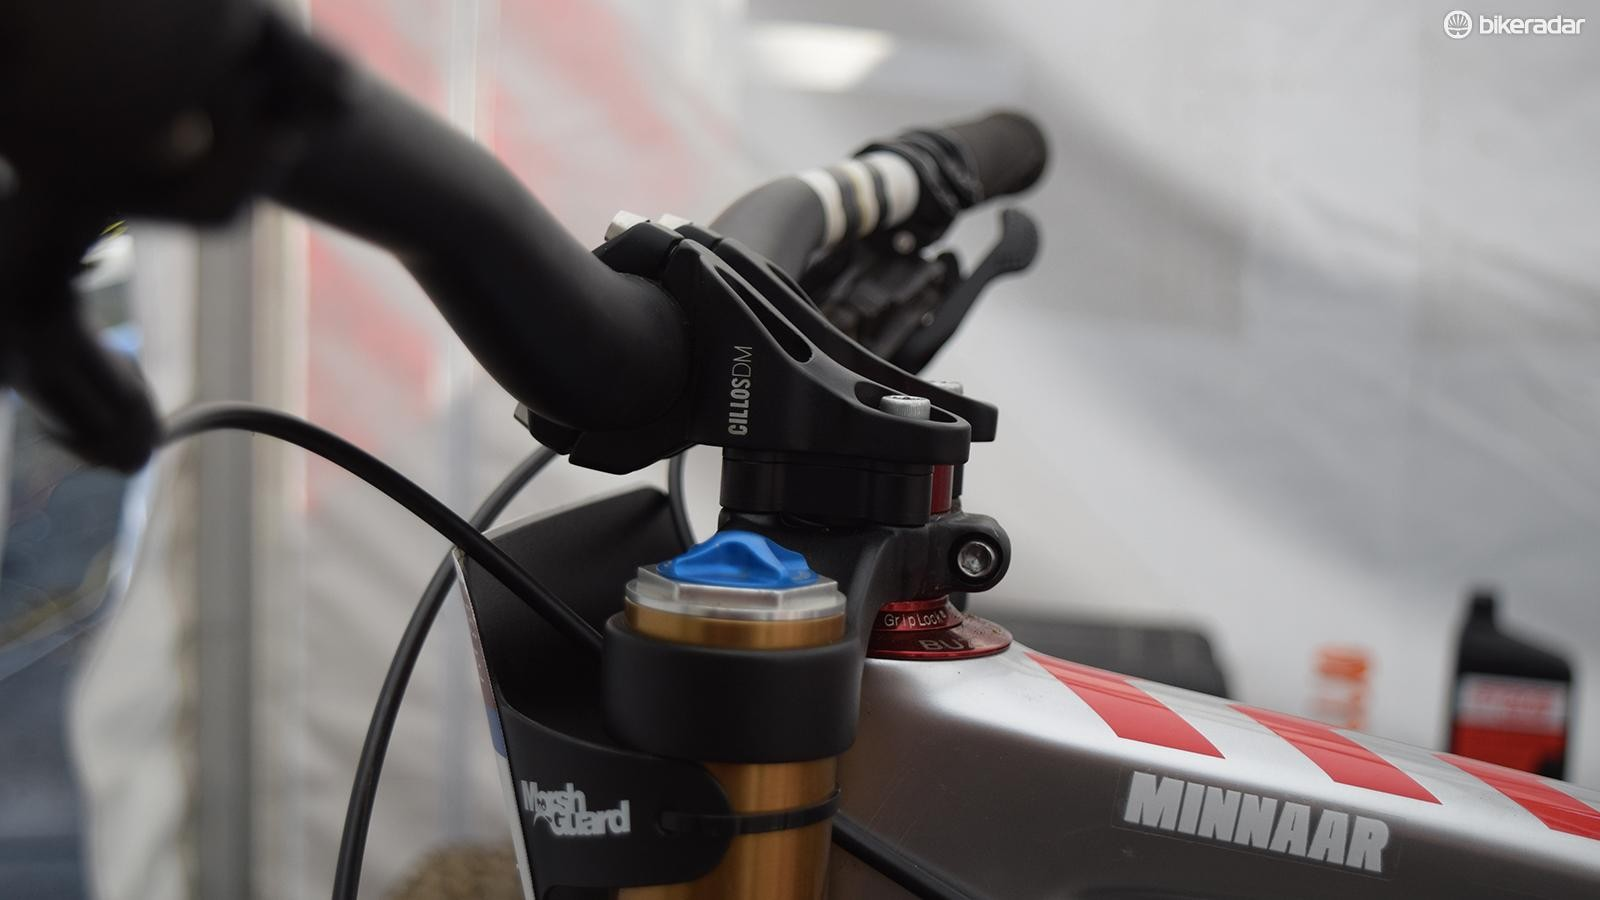 Greg Minnaar still uses a generous spacer under his stem (we'd guess at least 10mm) along with a 28mm rise bar